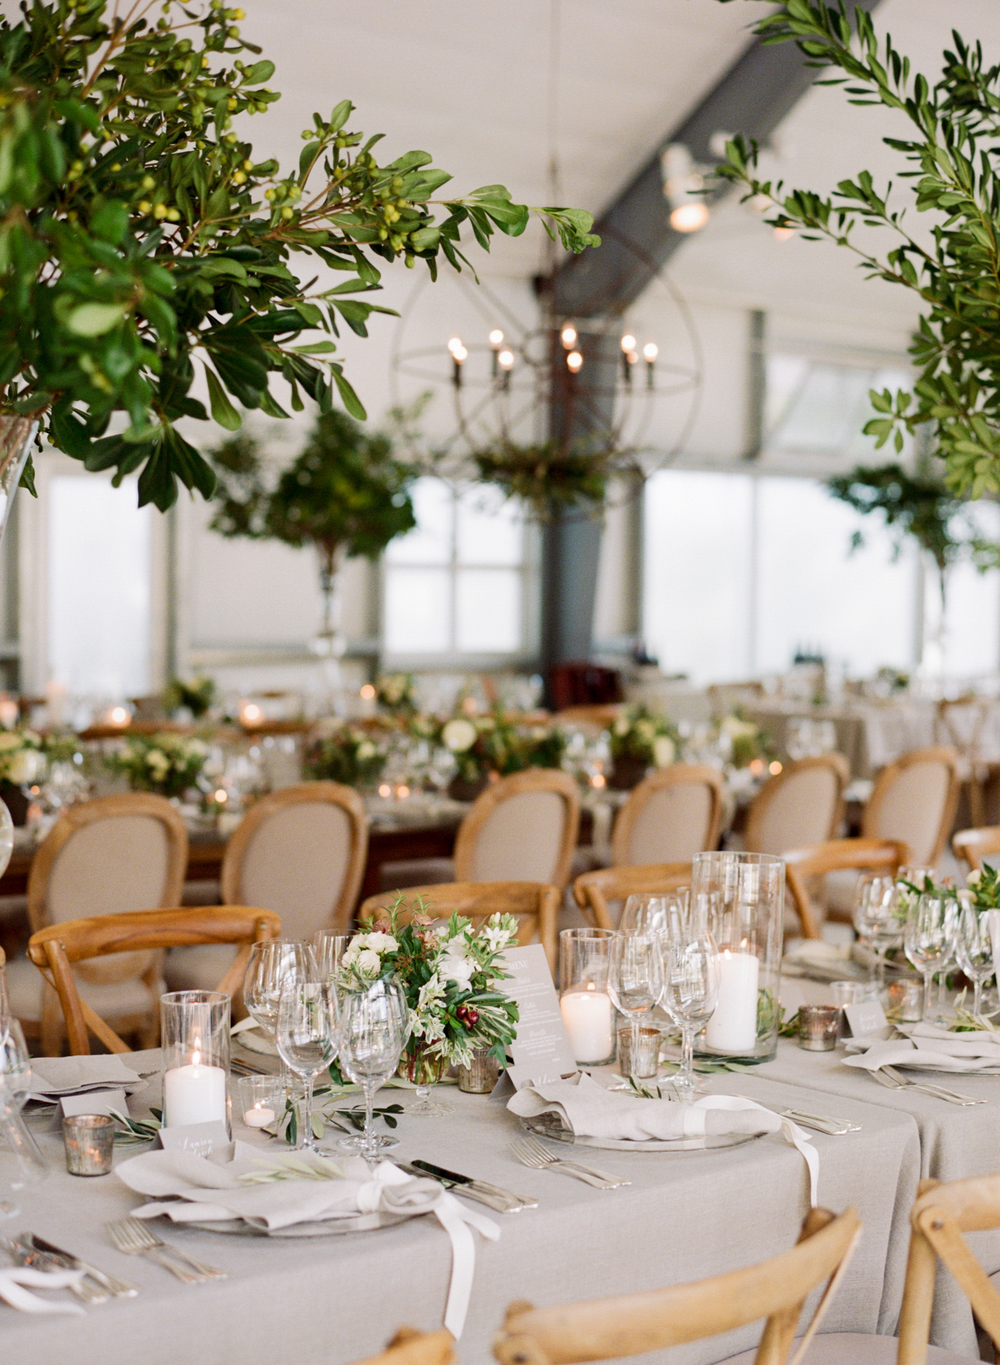 Small orange tree centerpieces, elegant linen table settings; Sylvie Gil Photography